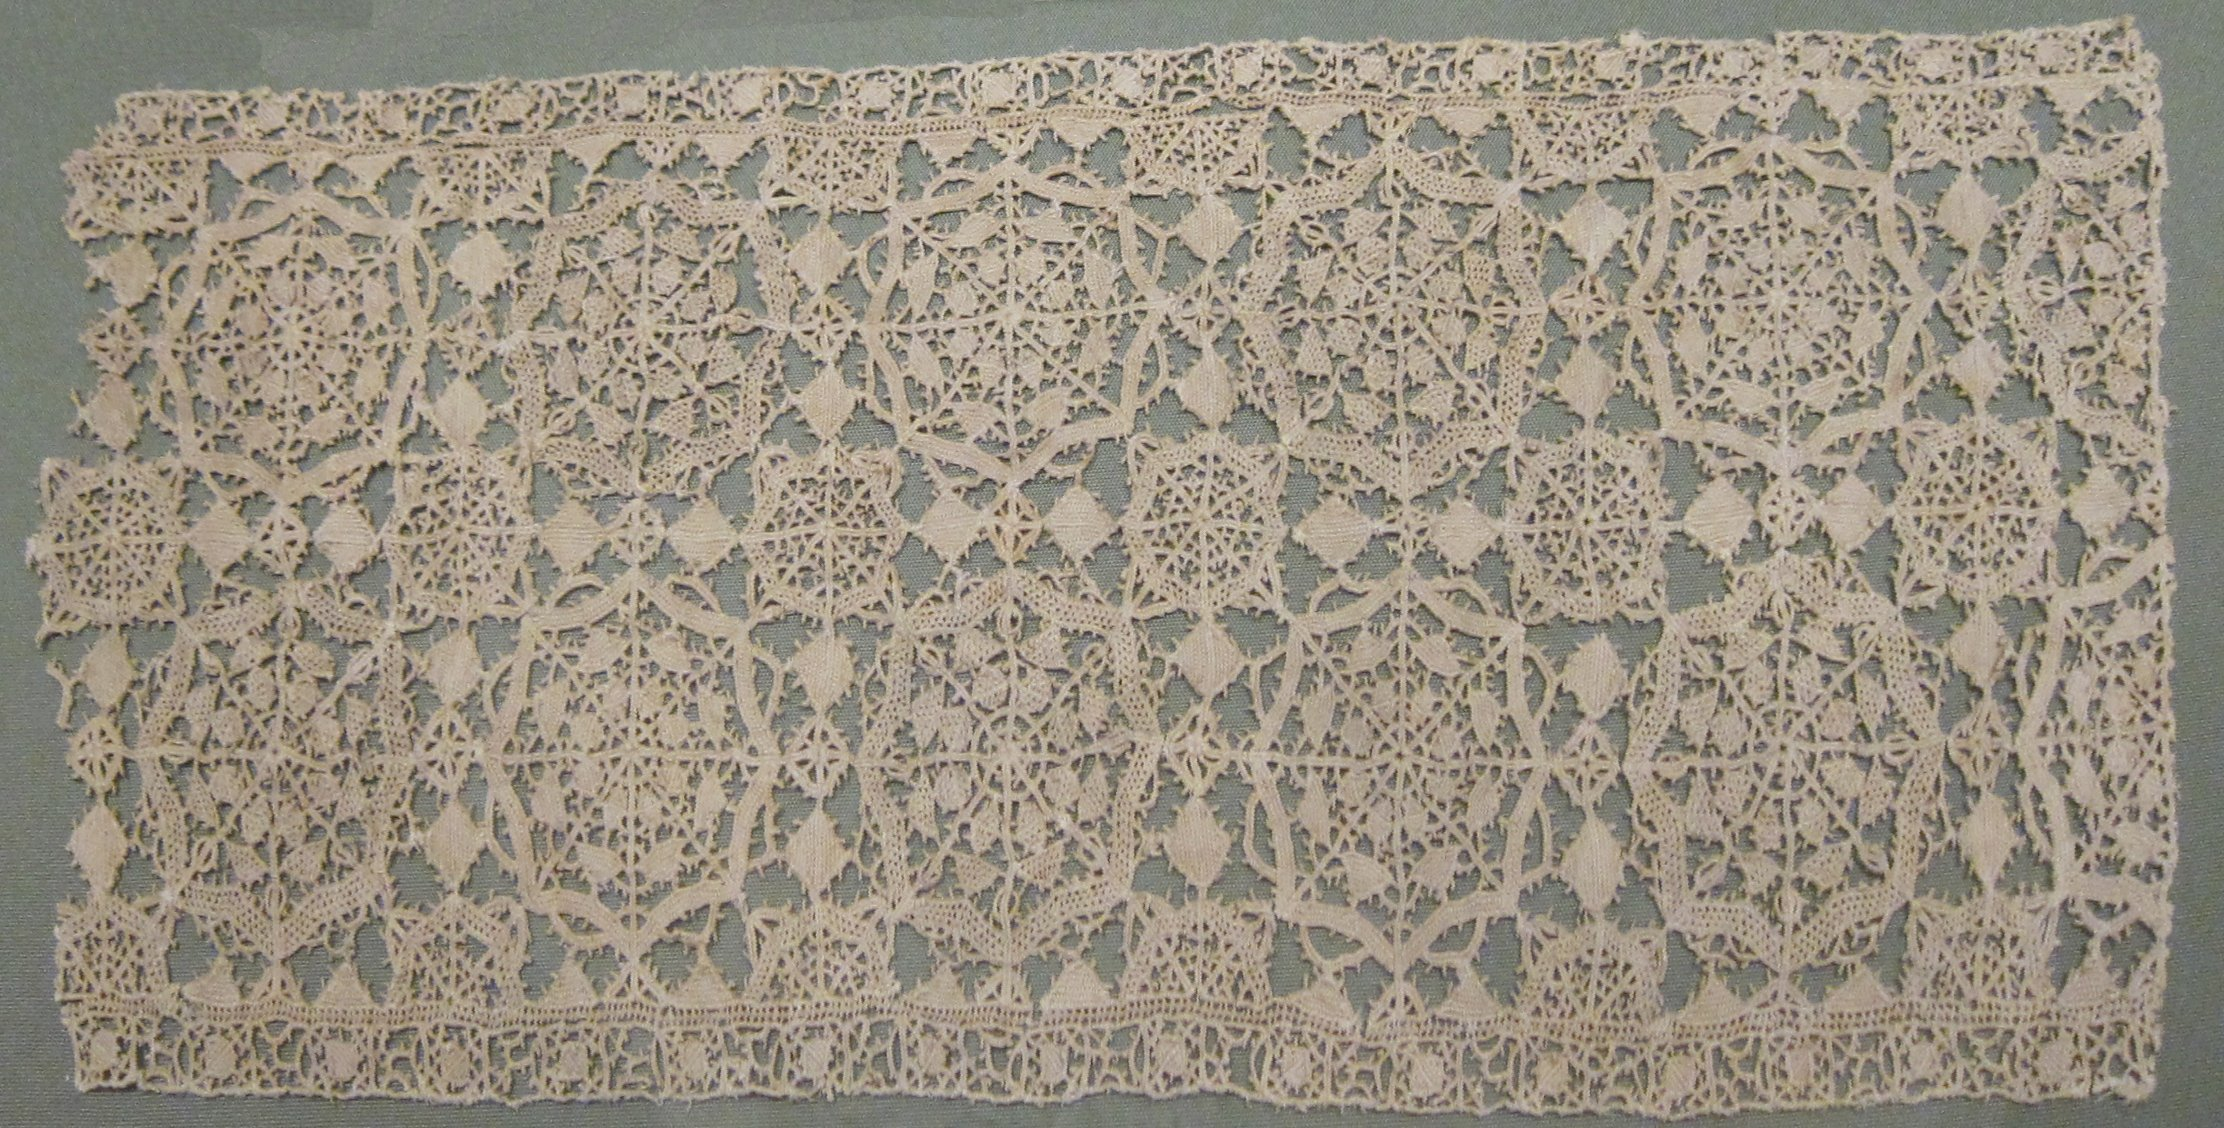 Italian needlepoint lace